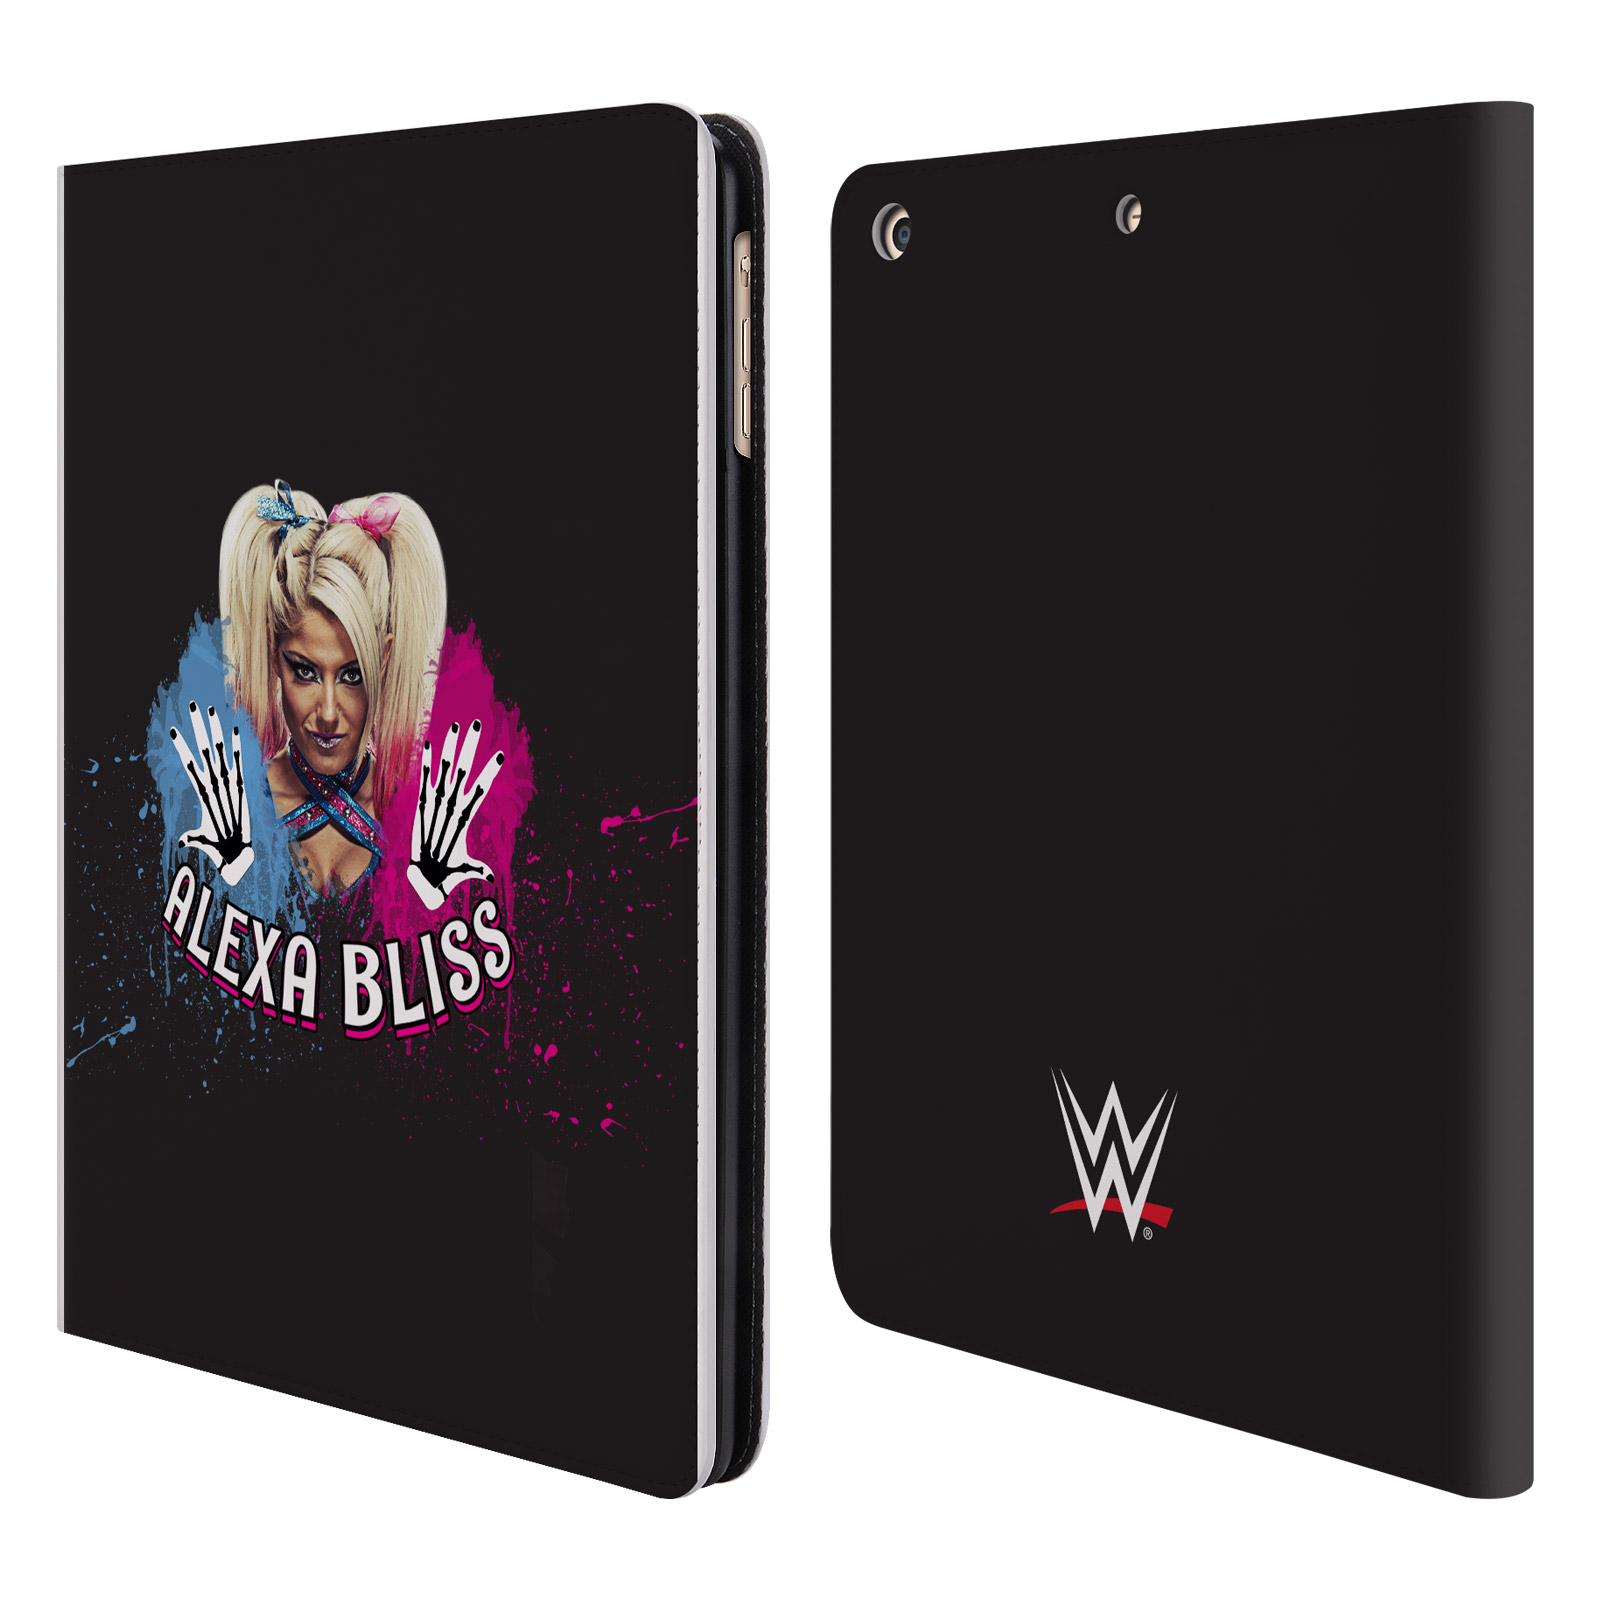 OFFICIAL WWE ALEXA BLISS LEATHER BOOK WALLET CASE COVER FOR APPLE IPAD